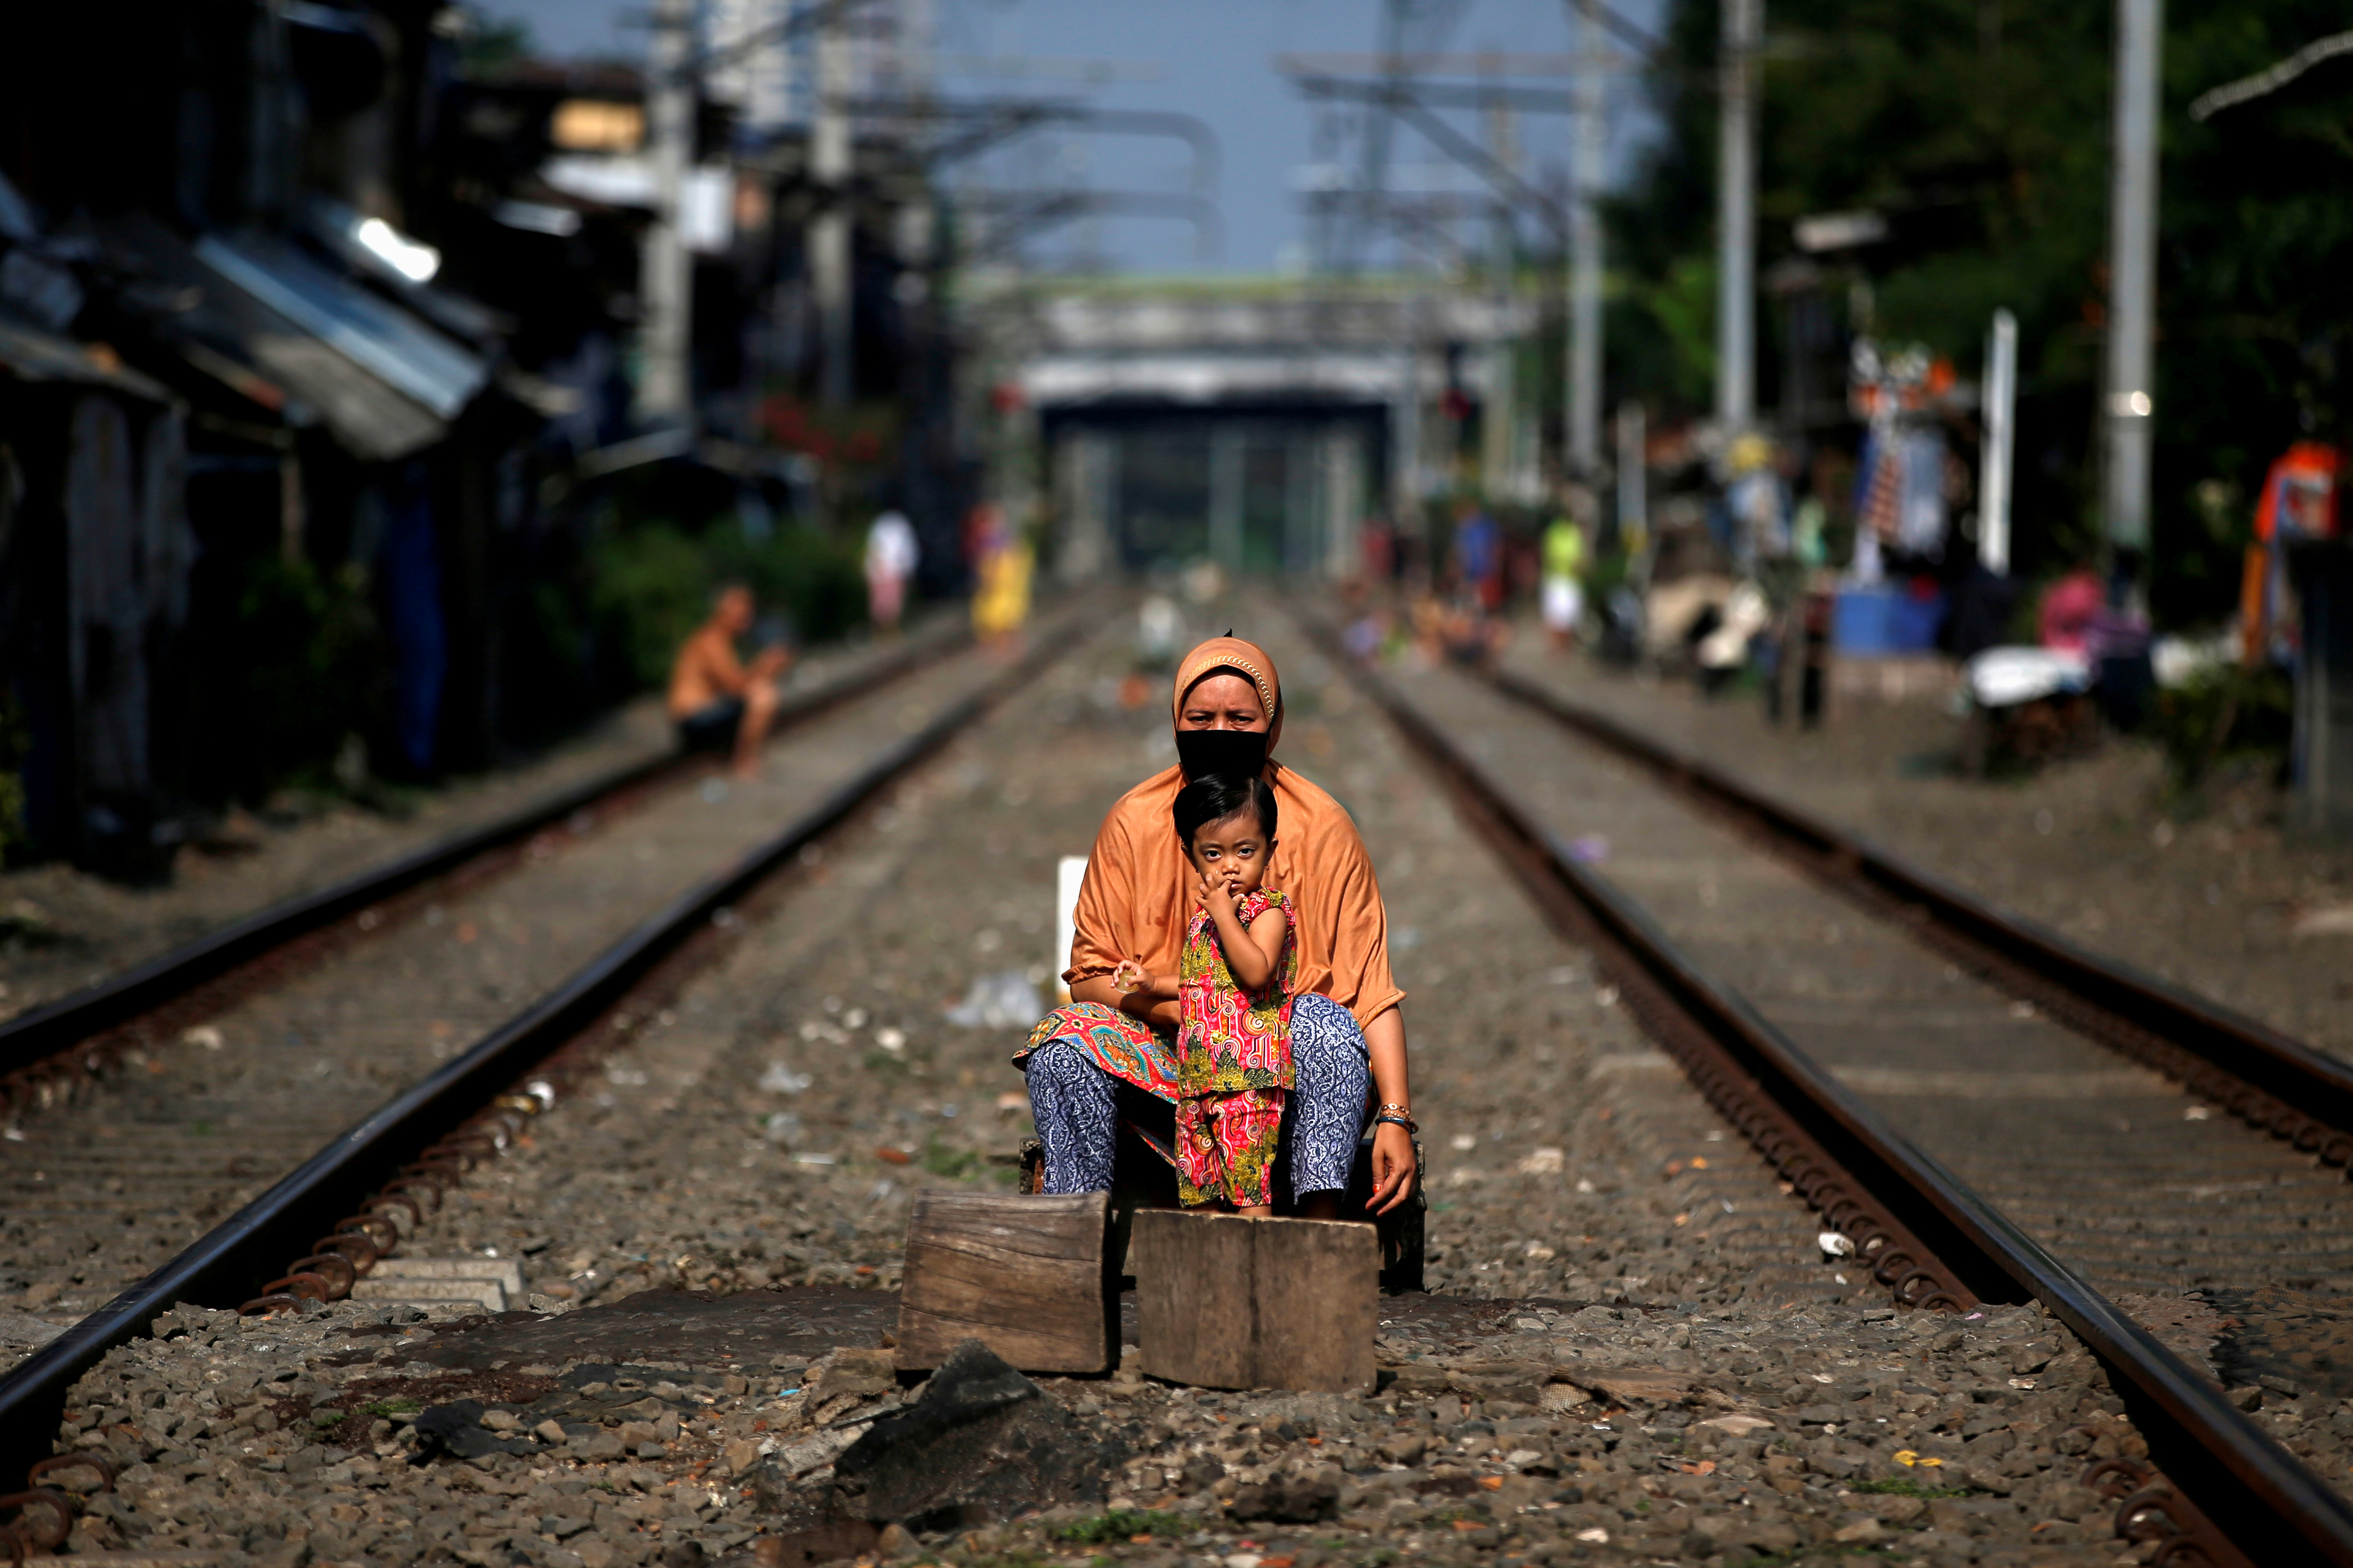 A woman and a child sit between rail tracks to enjoy sunshine as they believe it improves their immunity during social restrictions to prevent the spread of the CCP virus in Jakarta, Indonesia, on April 12, 2020. (Willy Kurniawan/Reuters)